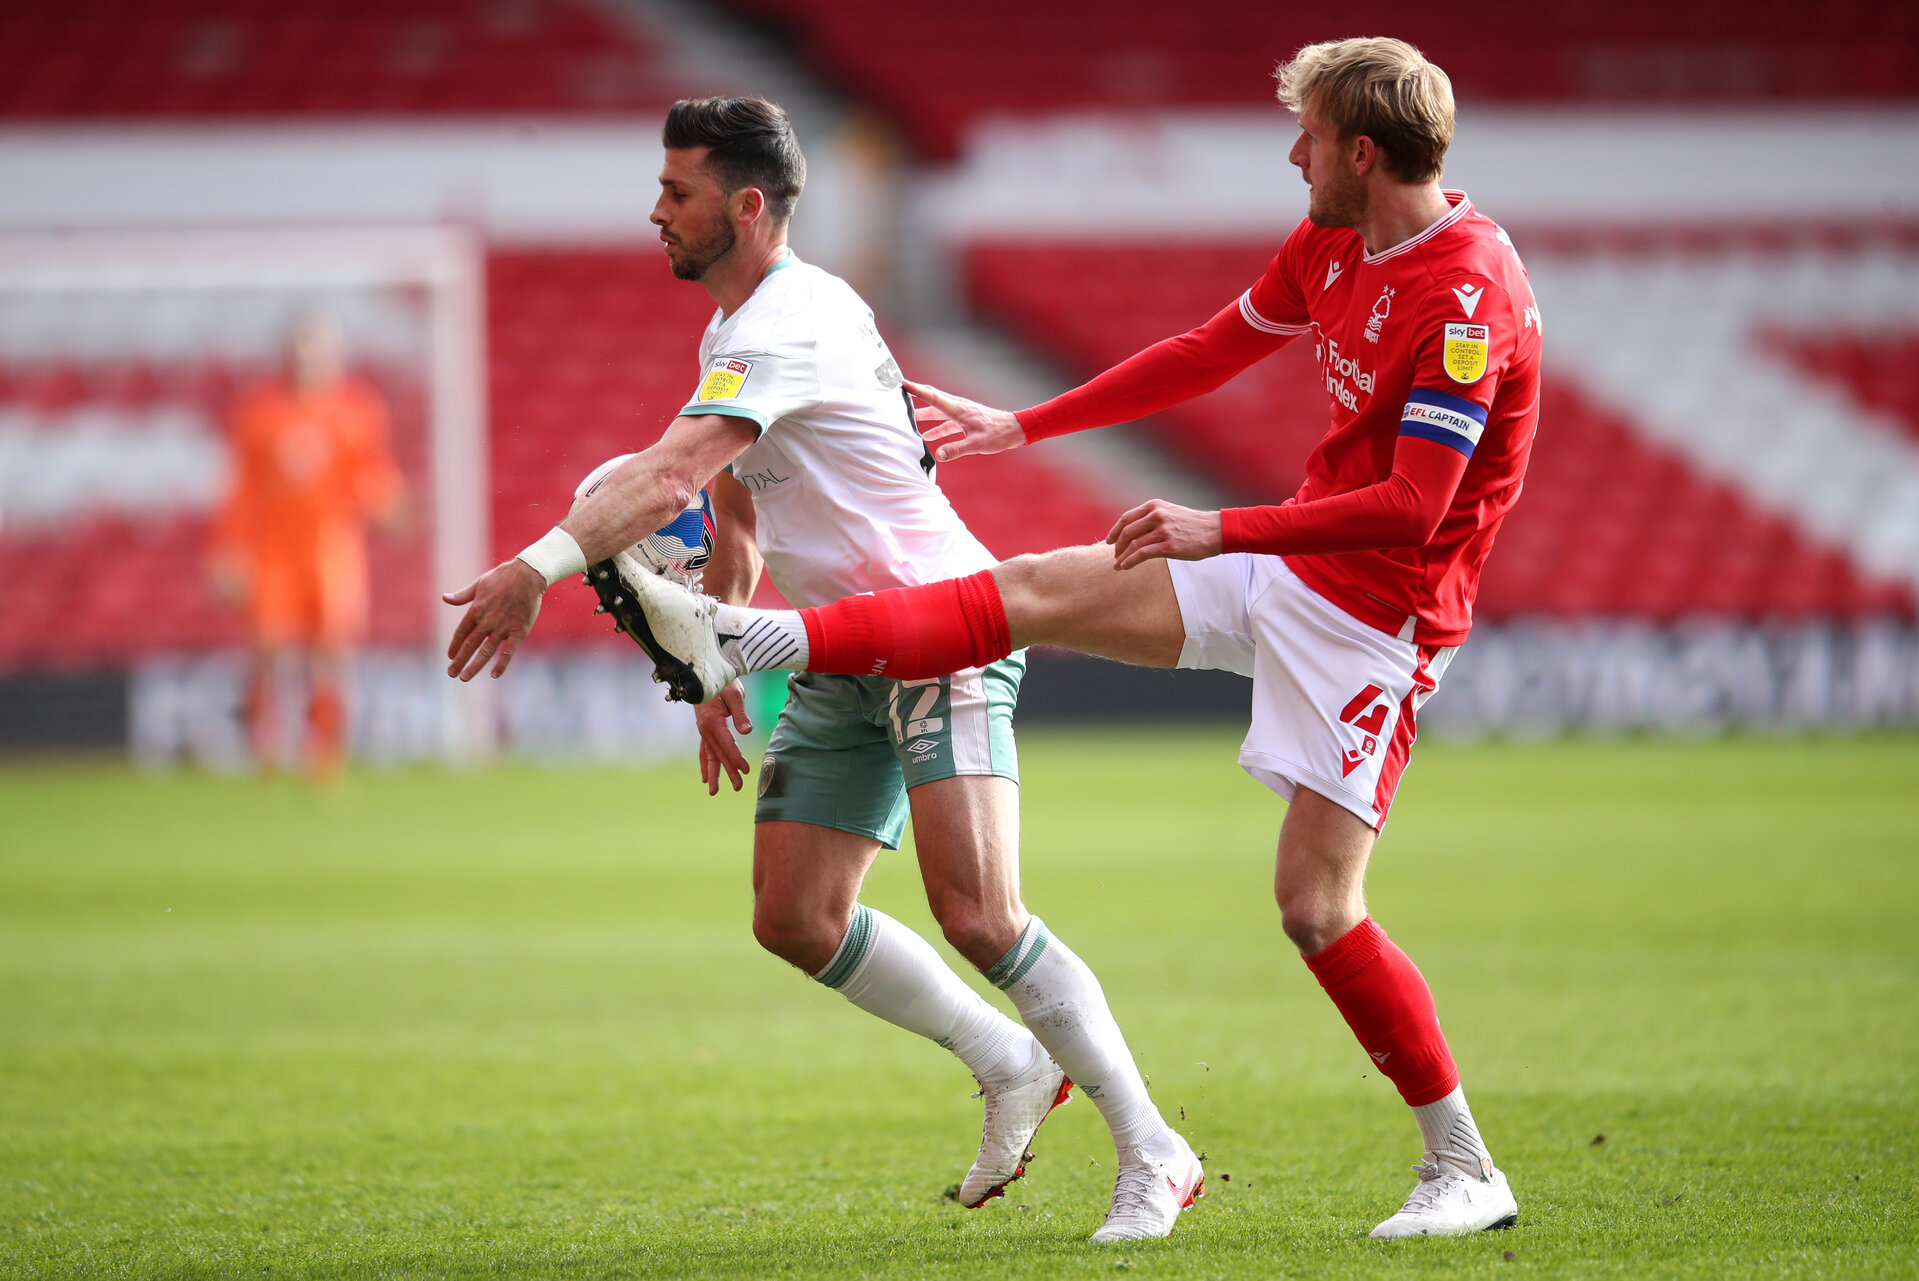 NOTTINGHAM, ENGLAND - FEBRUARY 13: Shane Long of AFC Bournemouth is challenged by Joe Worrall of Nottingham Forest  during the Sky Bet Championship match between Nottingham Forest and AFC Bournemouth at City Ground on February 13, 2021 in Nottingham, England. Sporting stadiums around the UK remain under strict restrictions due to the Coronavirus Pandemic as Government social distancing laws prohibit fans inside venues resulting in games being played behind closed doors. (Photo by Alex Pantling/Getty Images)